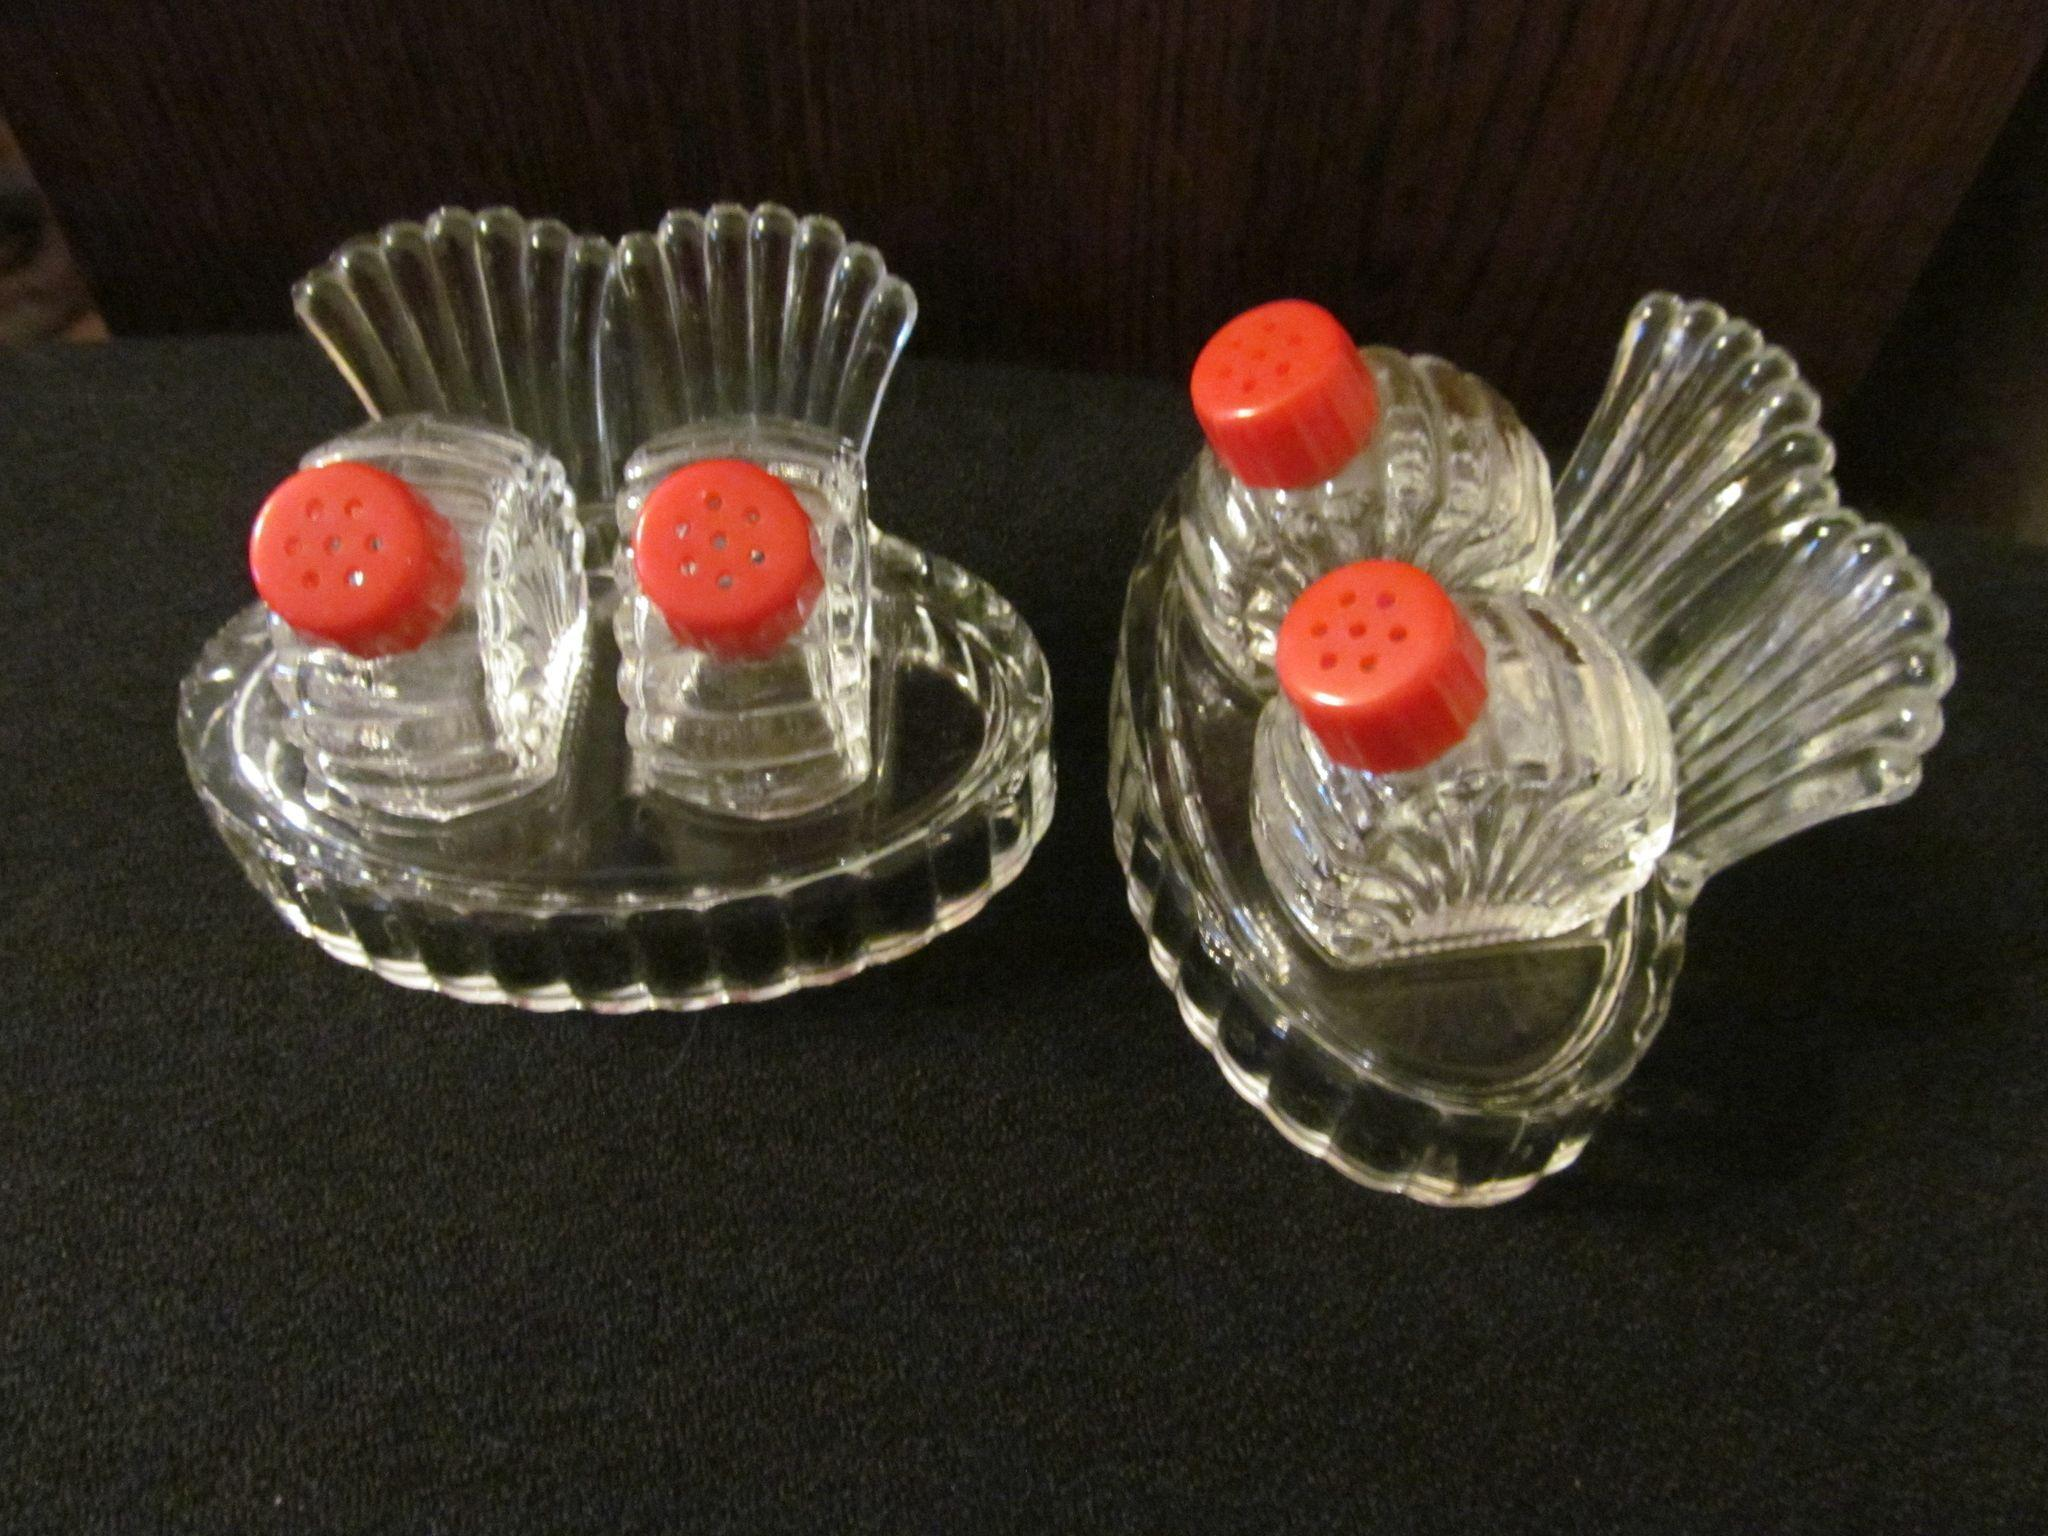 Pair Glass Salt Pepper Shaker Sets with Card Holder Trays, Red Bakelite Tops